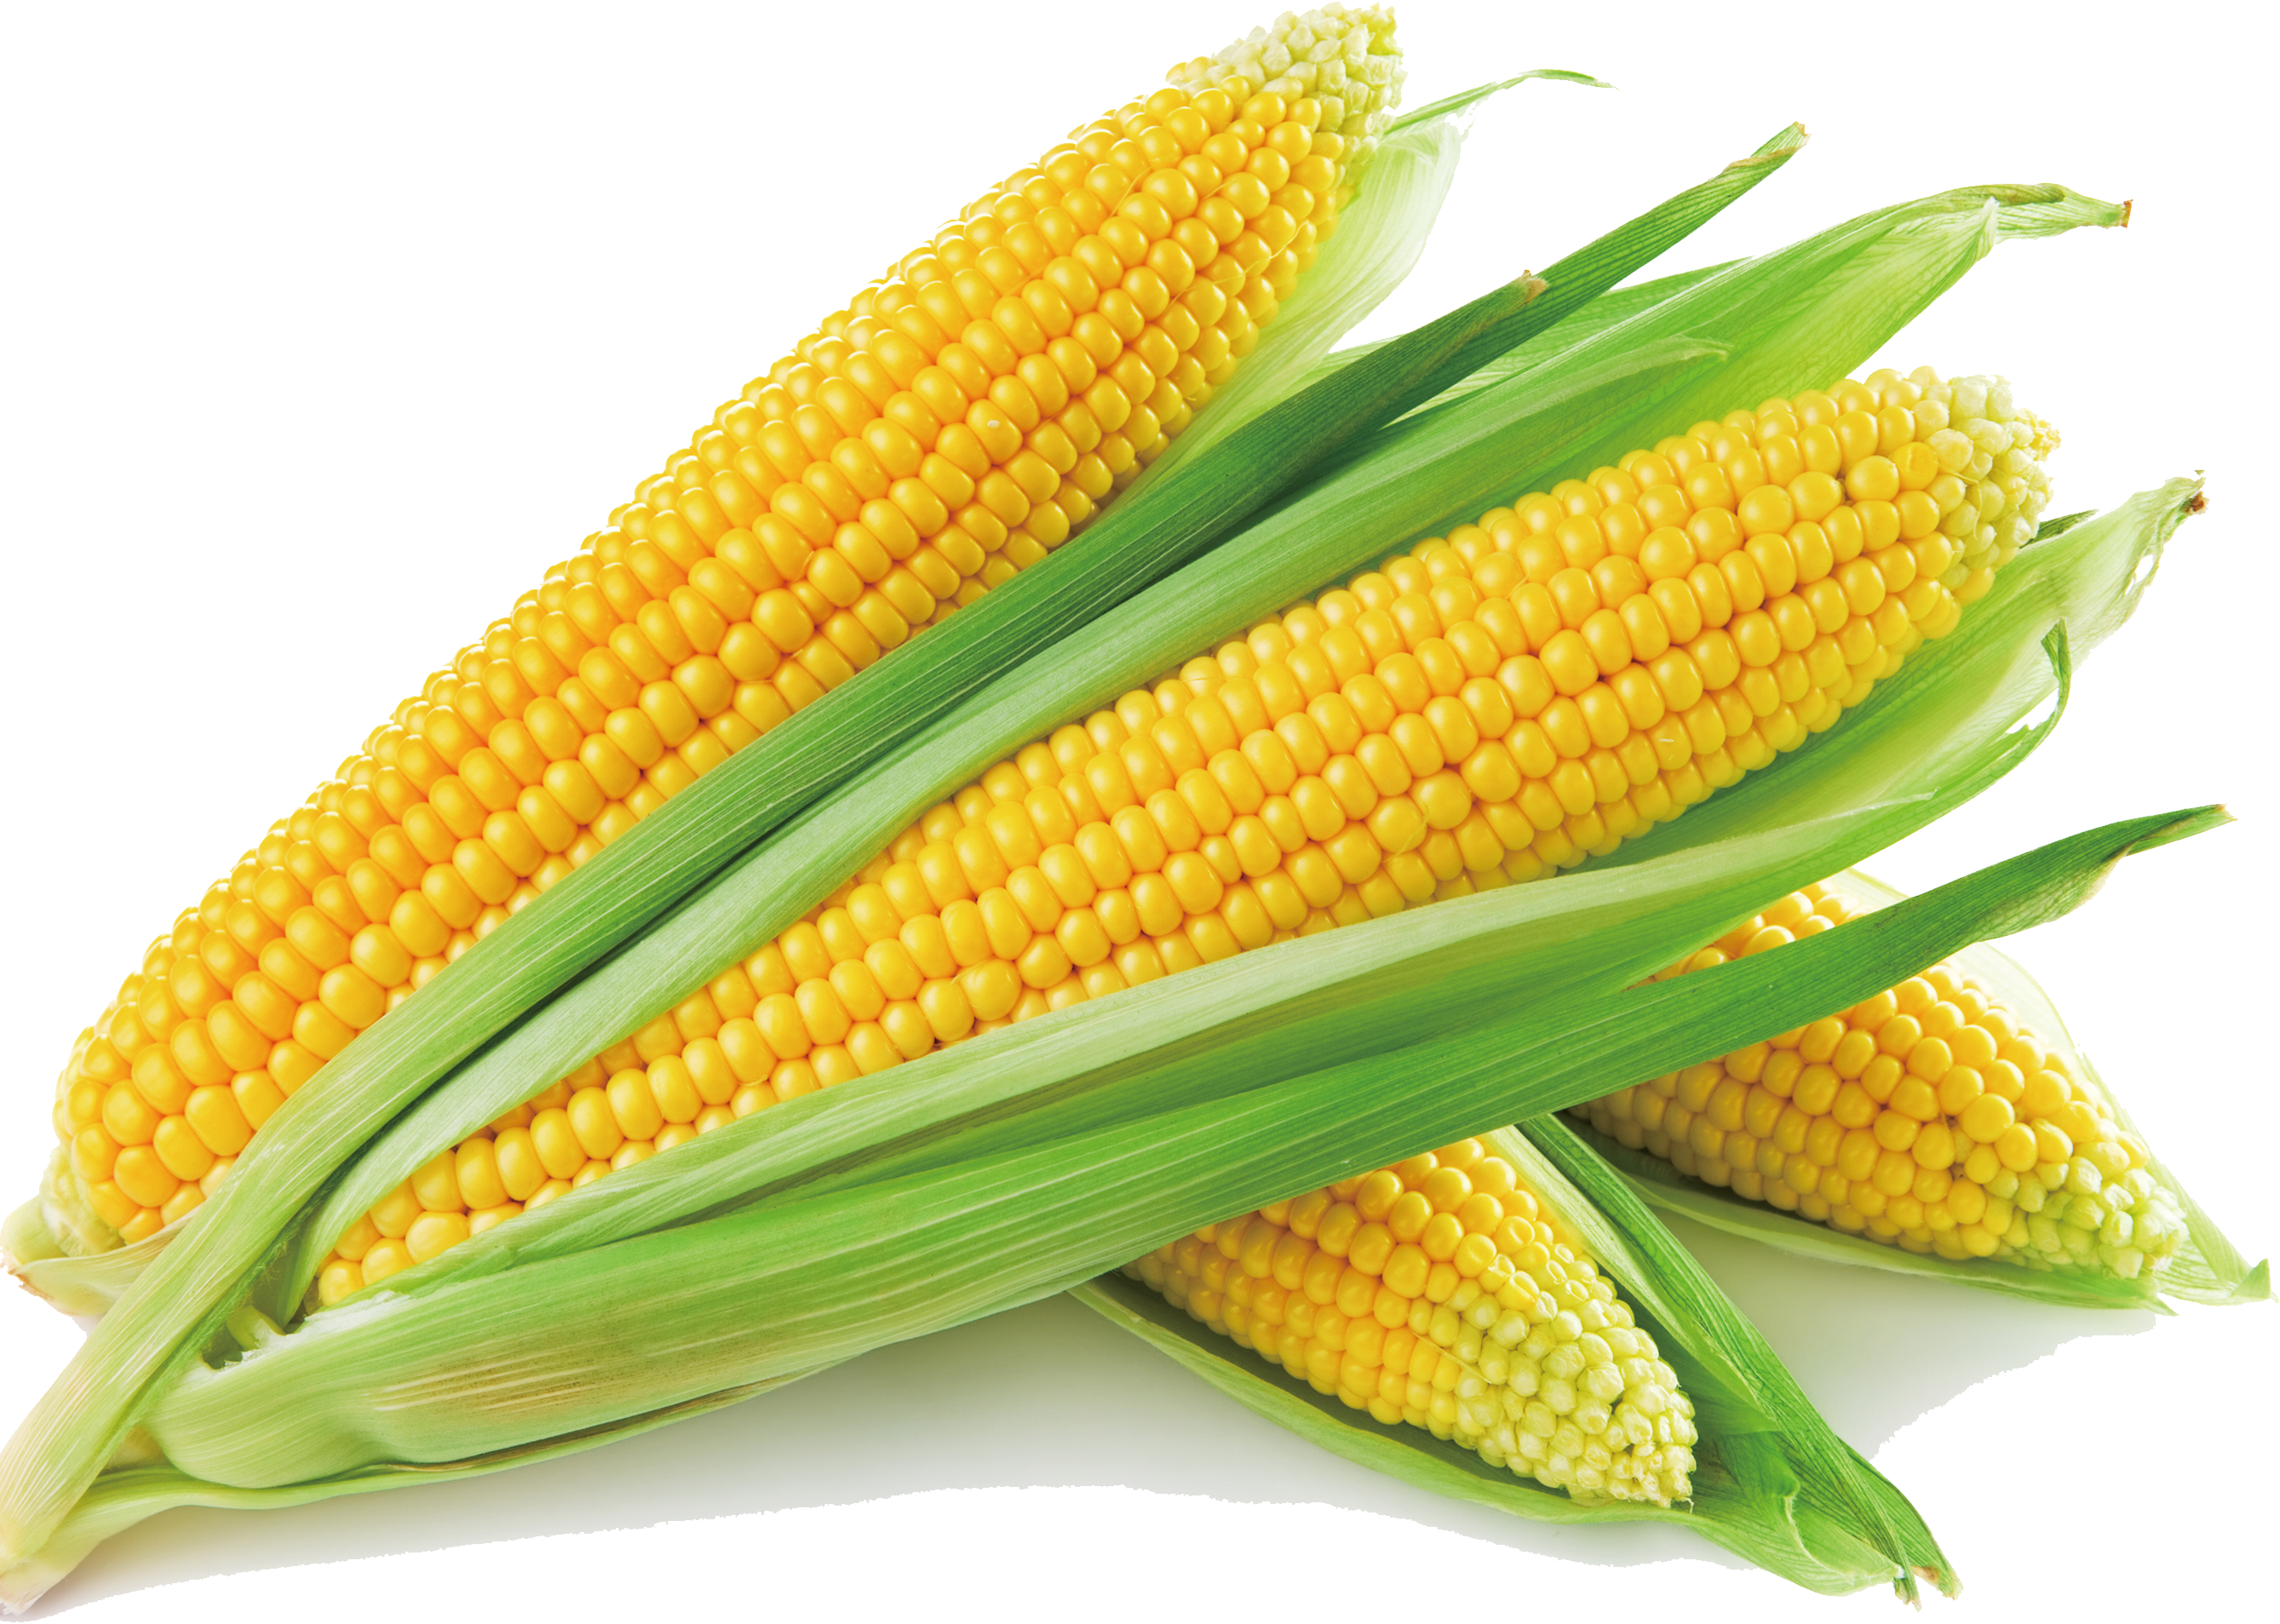 Corn on the cob png. Sweet soup maize vegetable